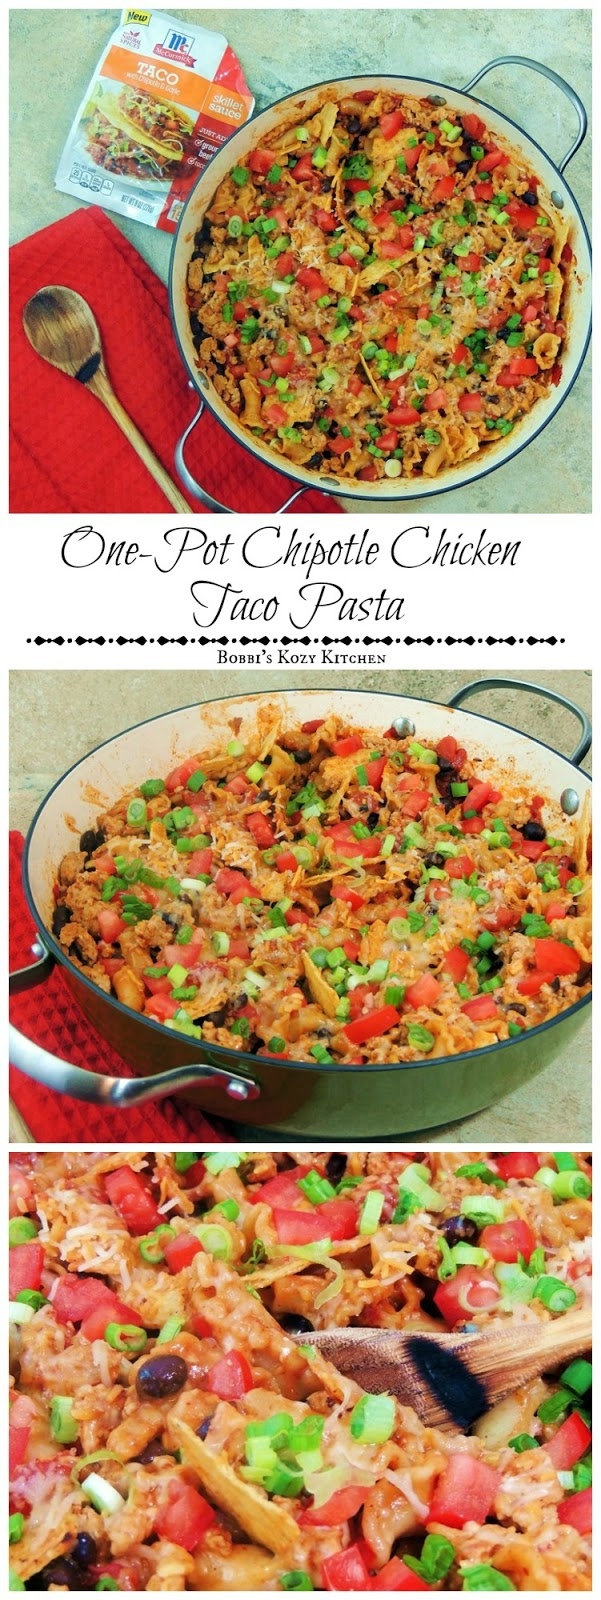 Skillet meals are a perfect for a busy family and this One-Pot Chipotle Chicken Taco Pasta will be your families new BFF! From www.bobbiskozykitchen.com